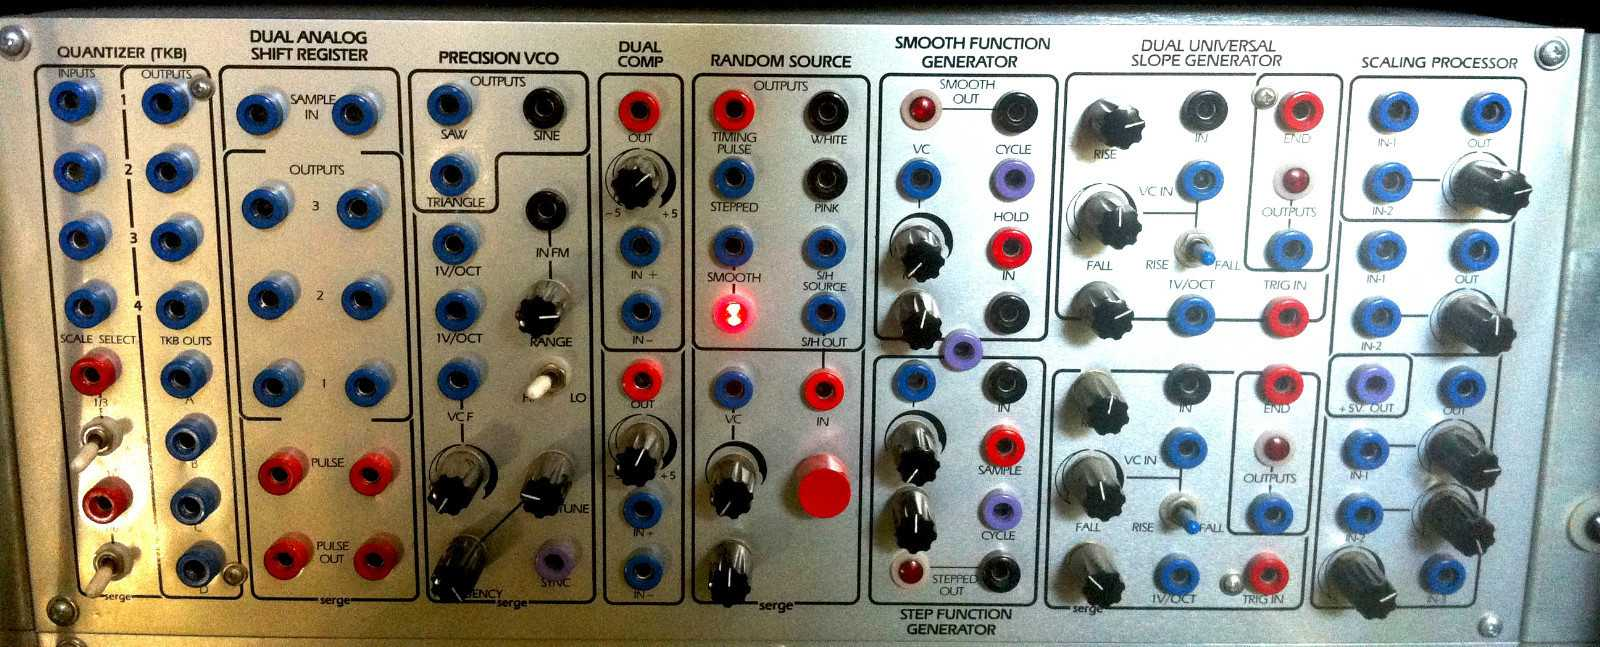 Serge Modular Custom synthesizer